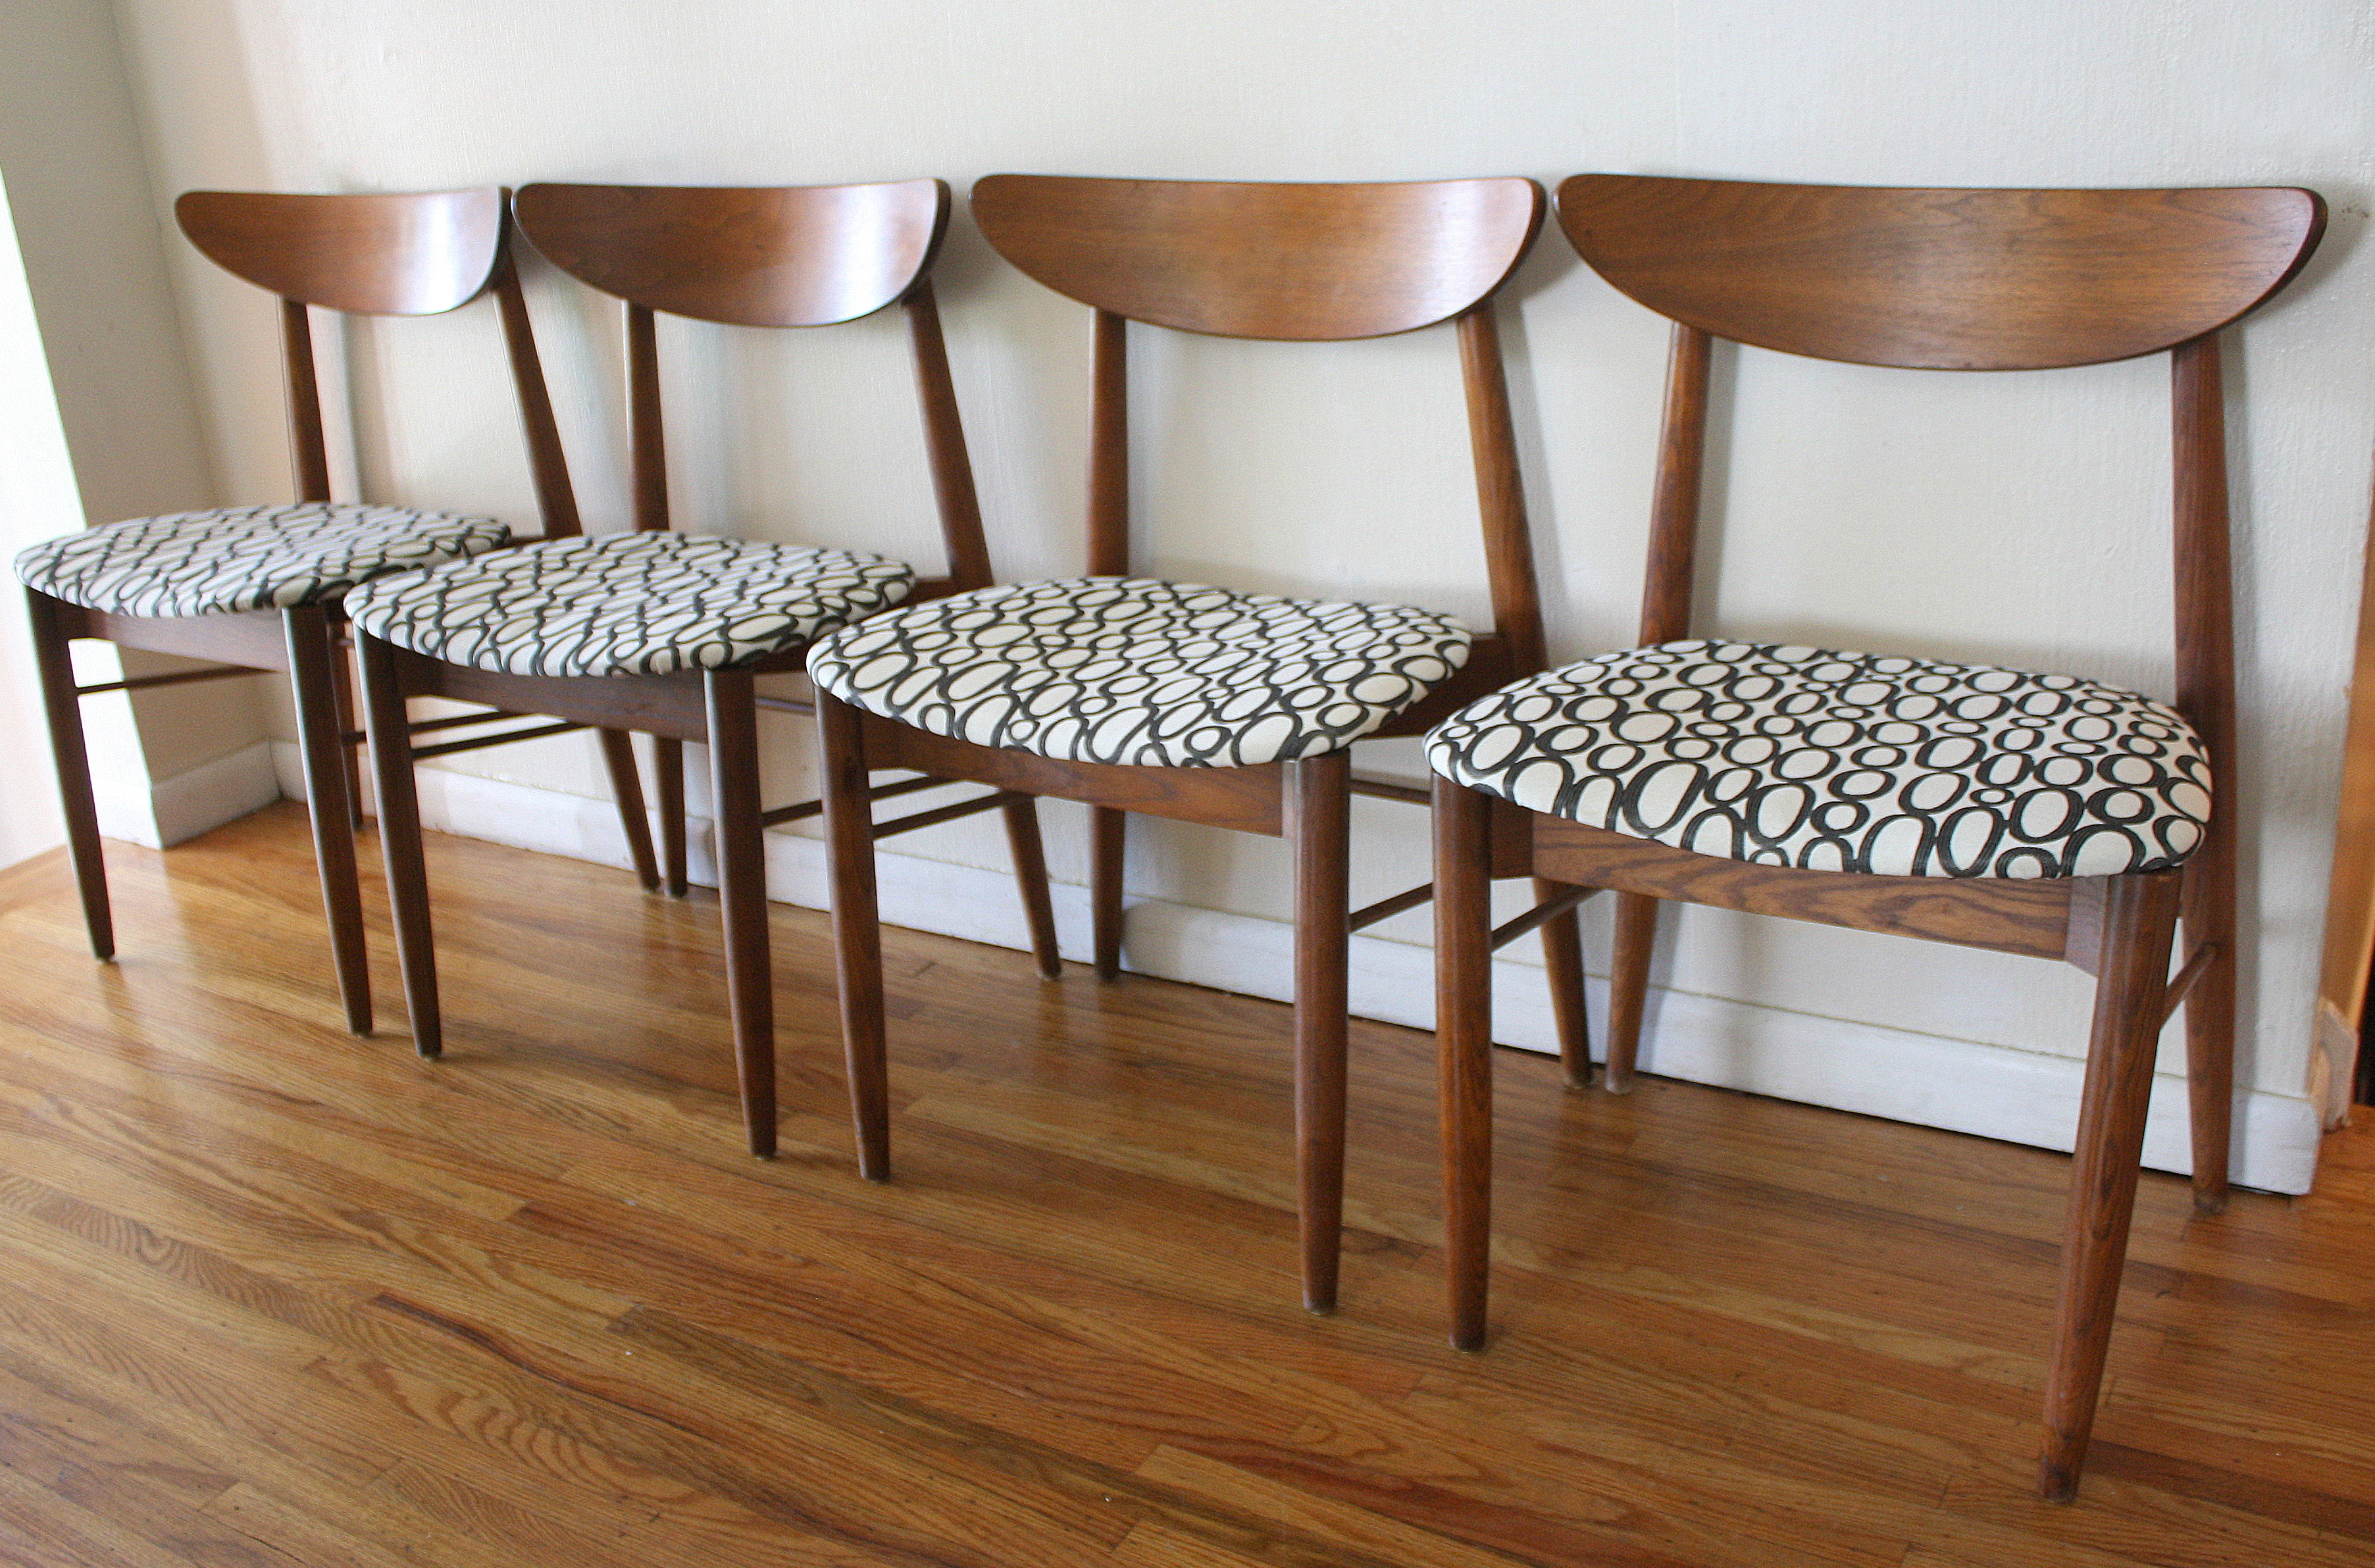 mid century modern sets of dining chairs mid century kitchen chairs mcm curved back chairs with circle seats 1